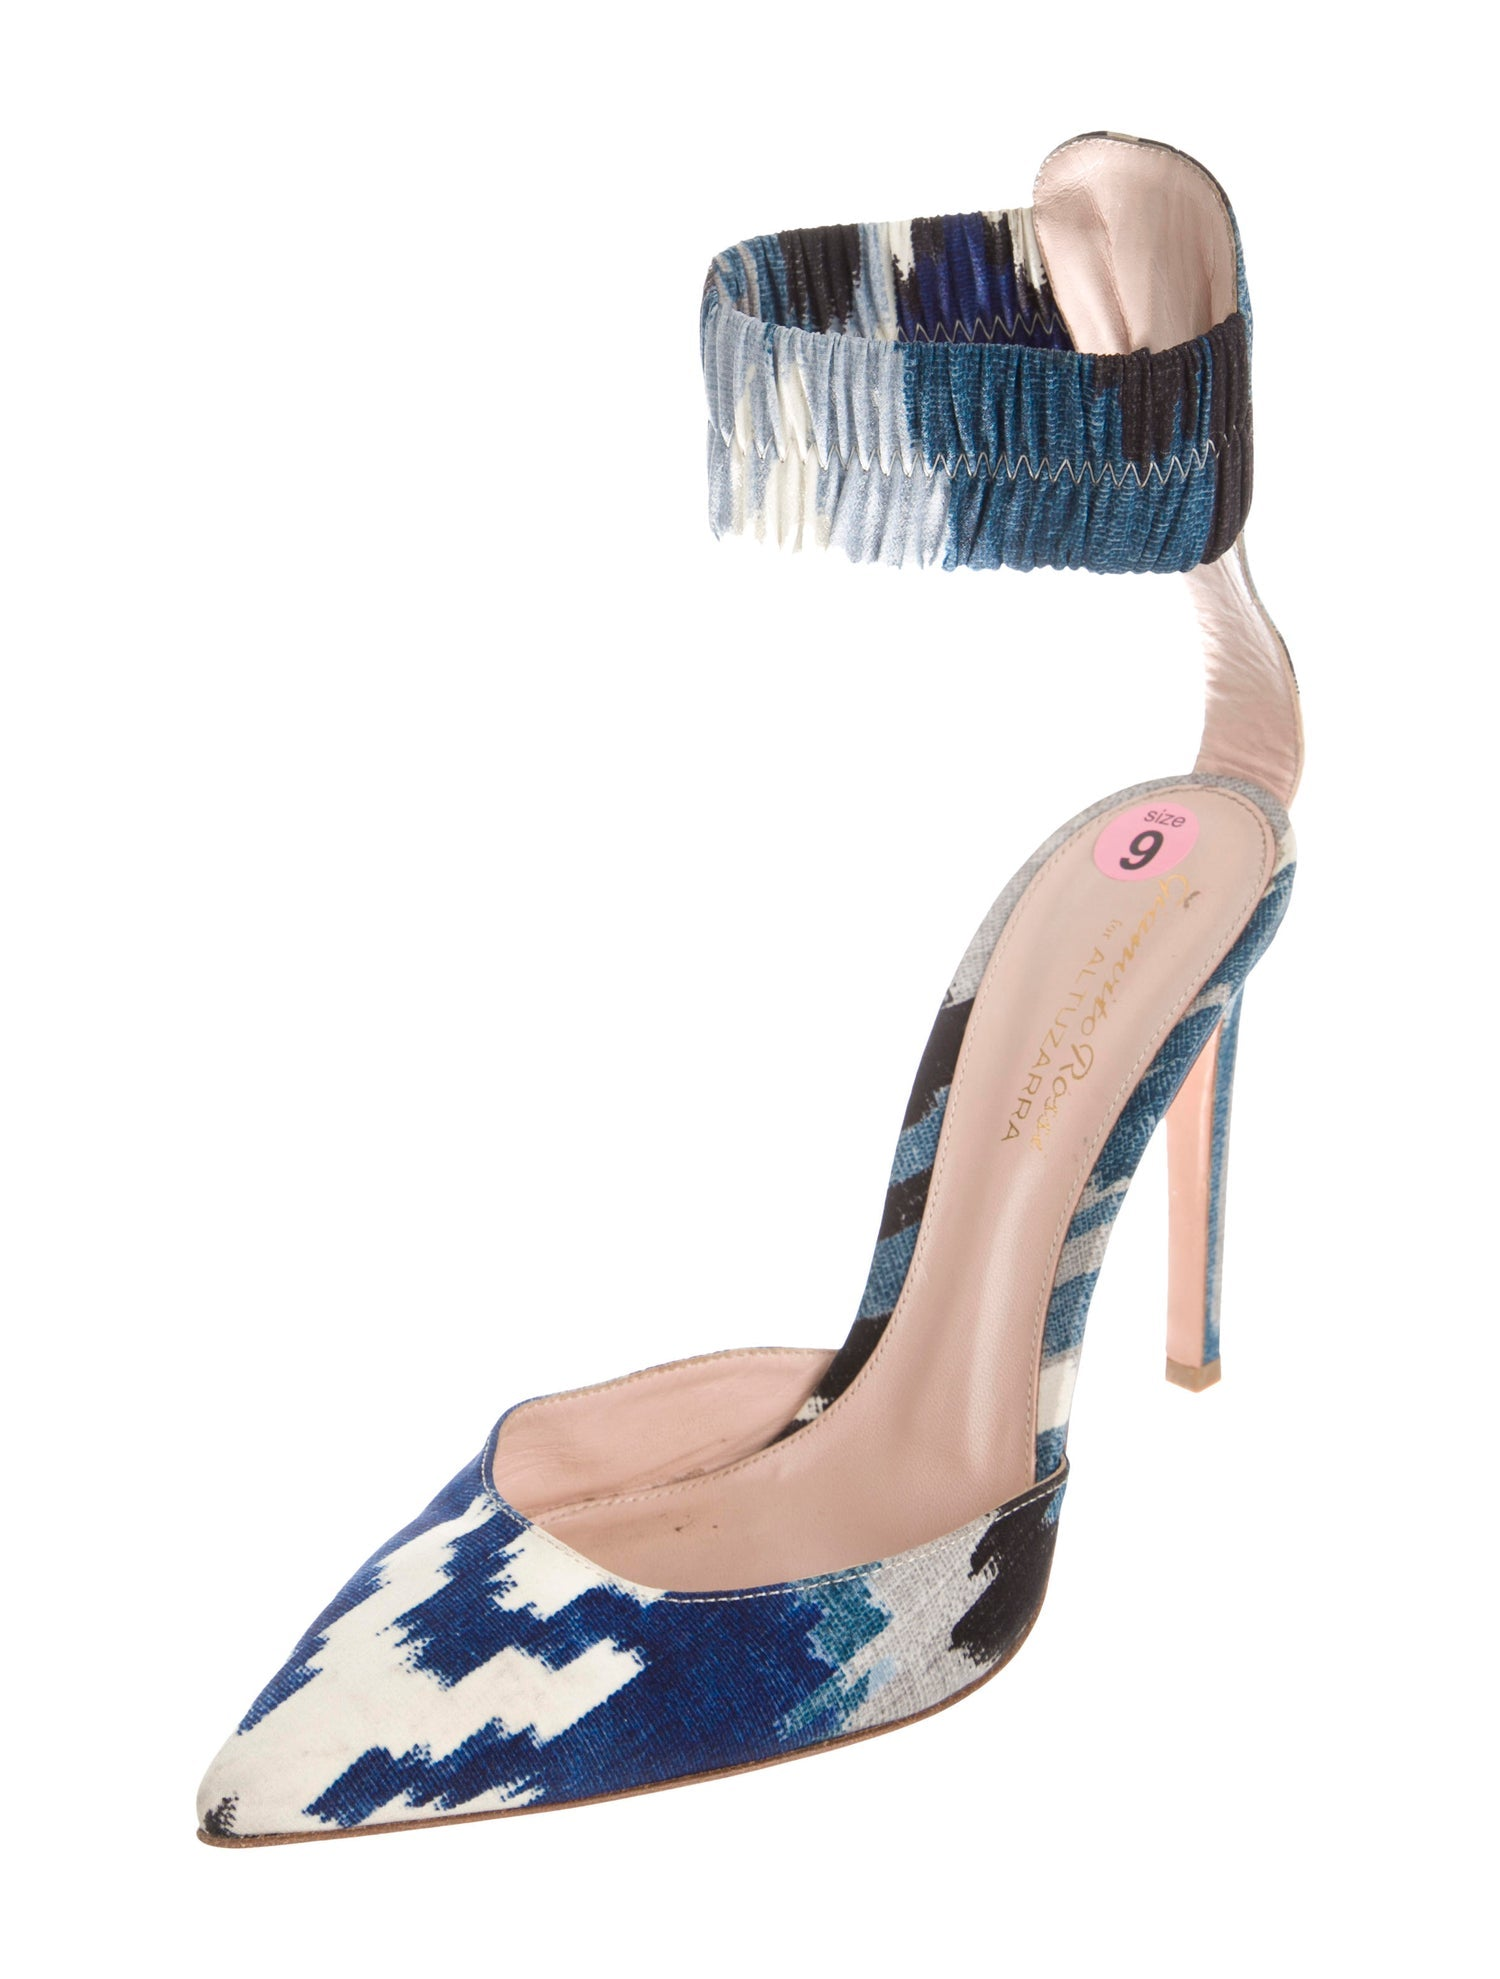 GIANVITO ROSSI FOR ALTUZARRA Printed Pointed-Toe Pumps - 39